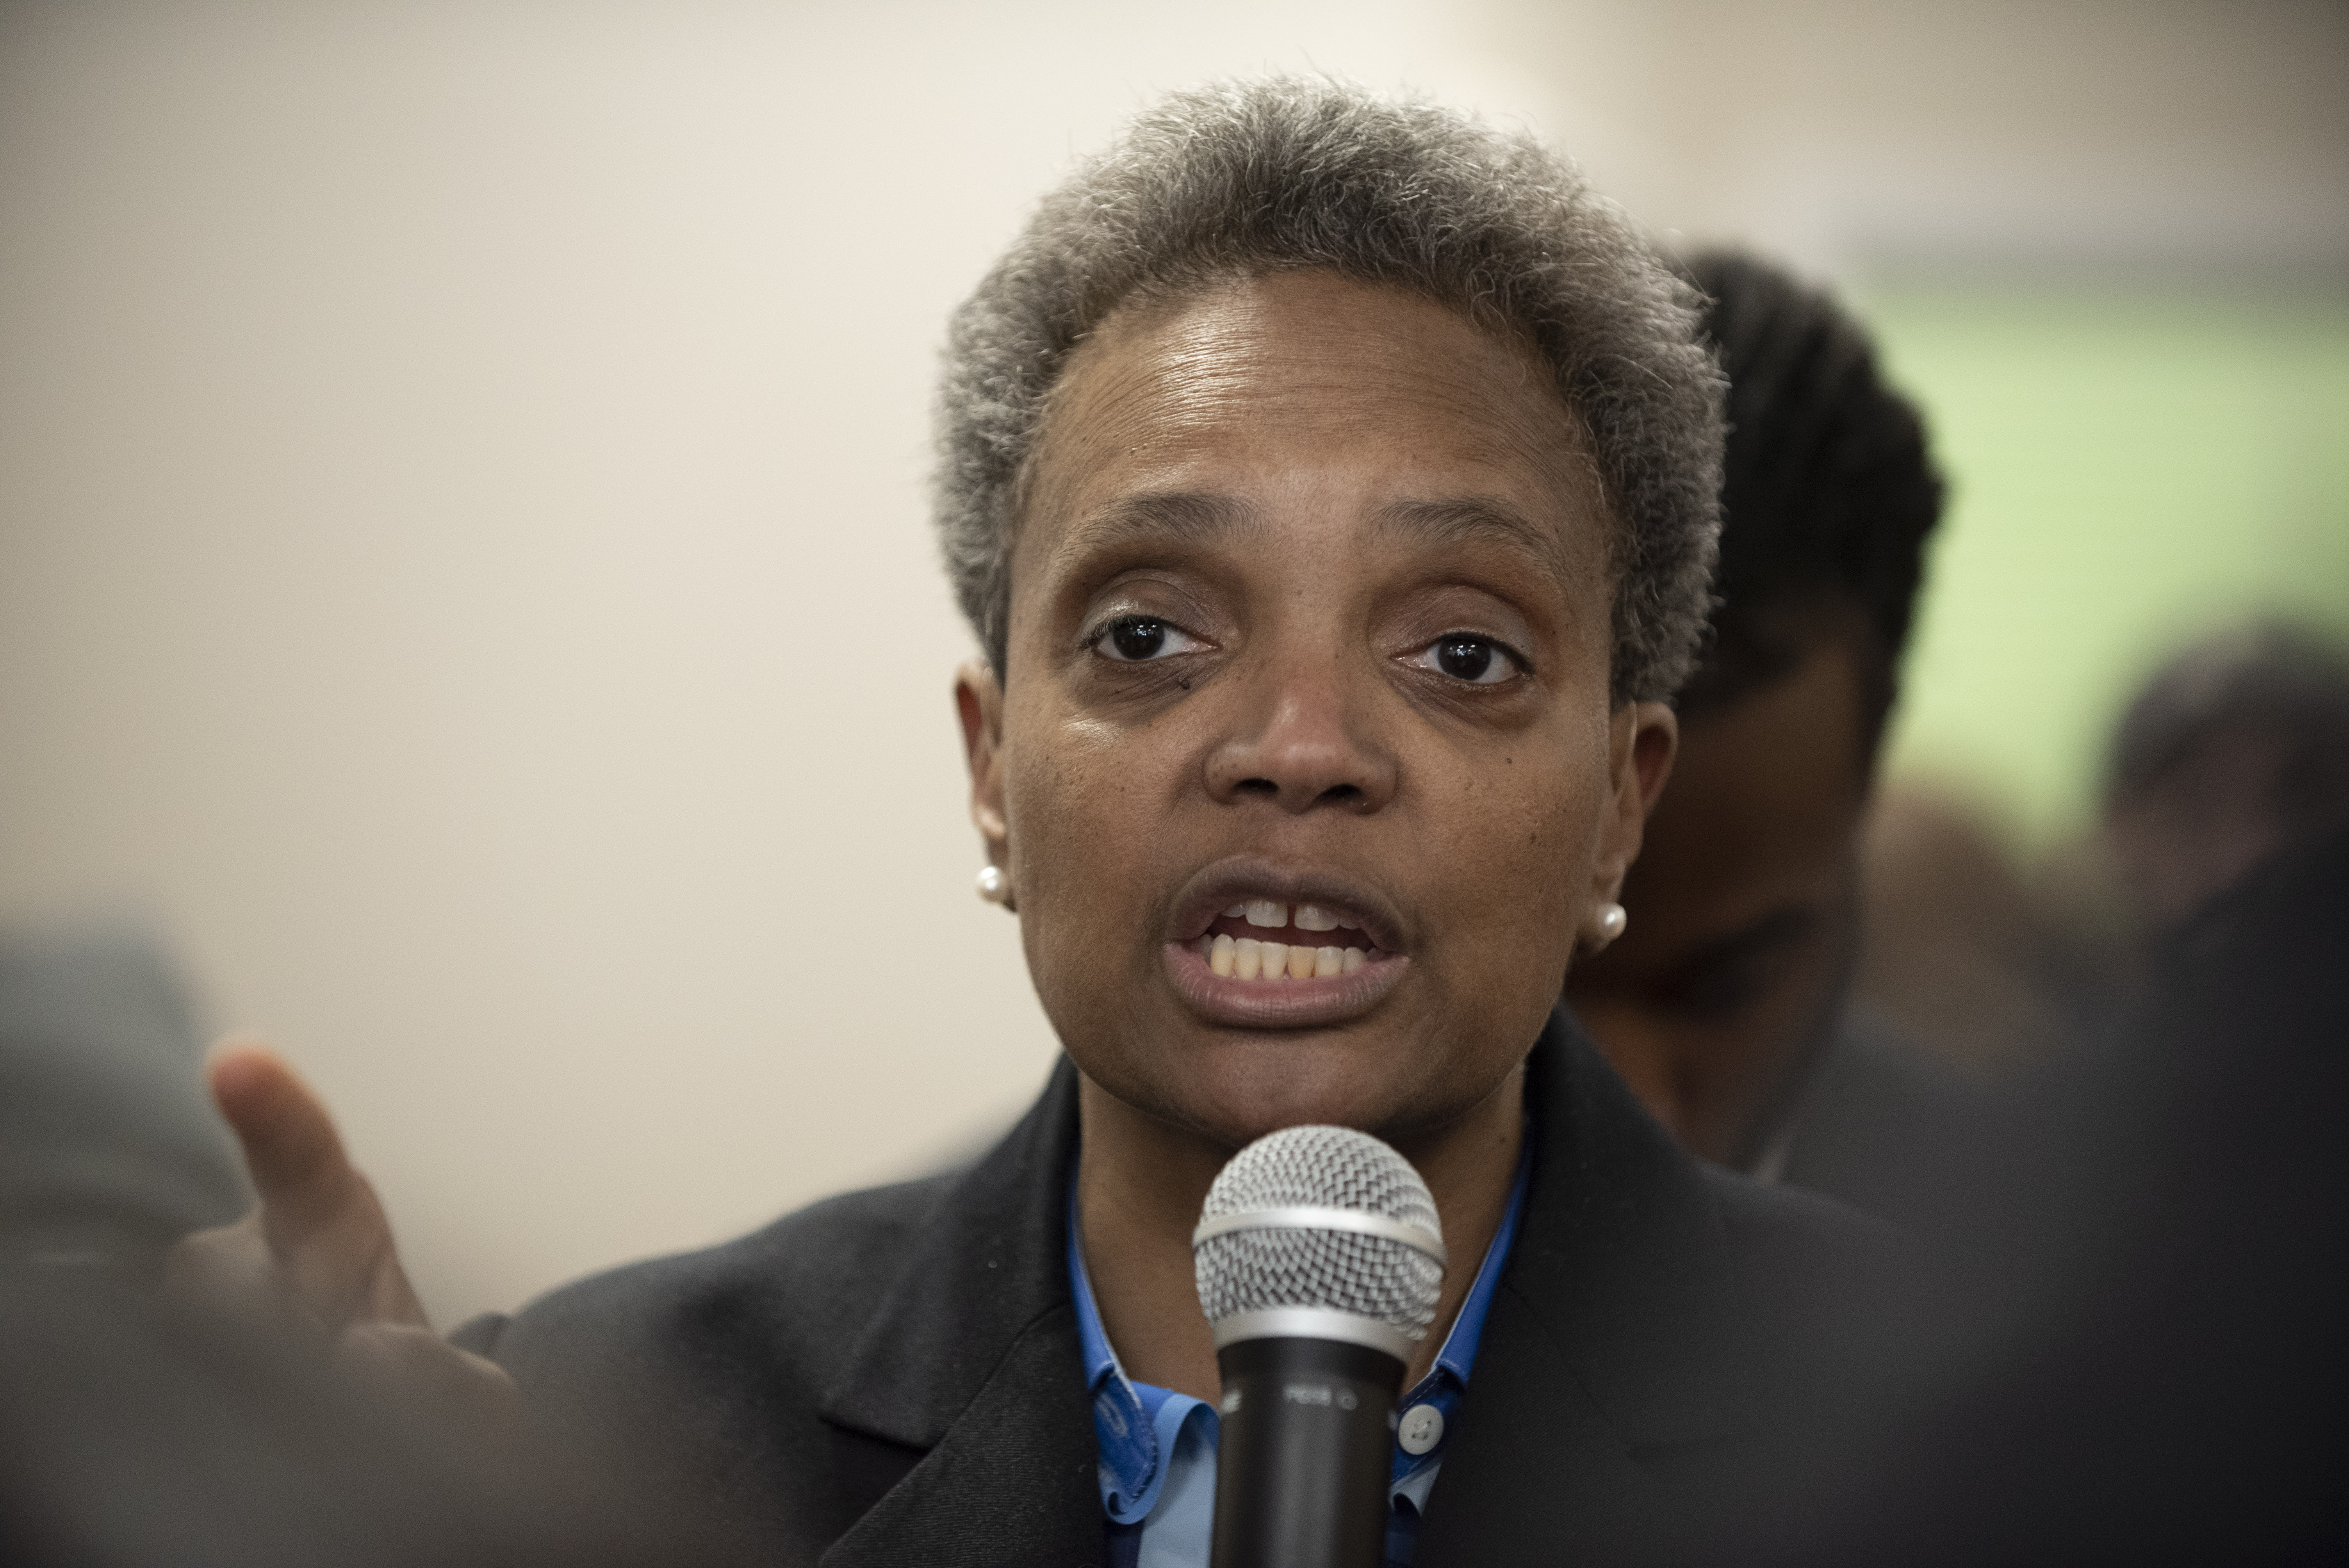 Chicago mayoral candidate Lori Lightfoot speaks in Lightfoot's South Shore field office on March 31, 2019. | Colin Boyle/Sun-Times